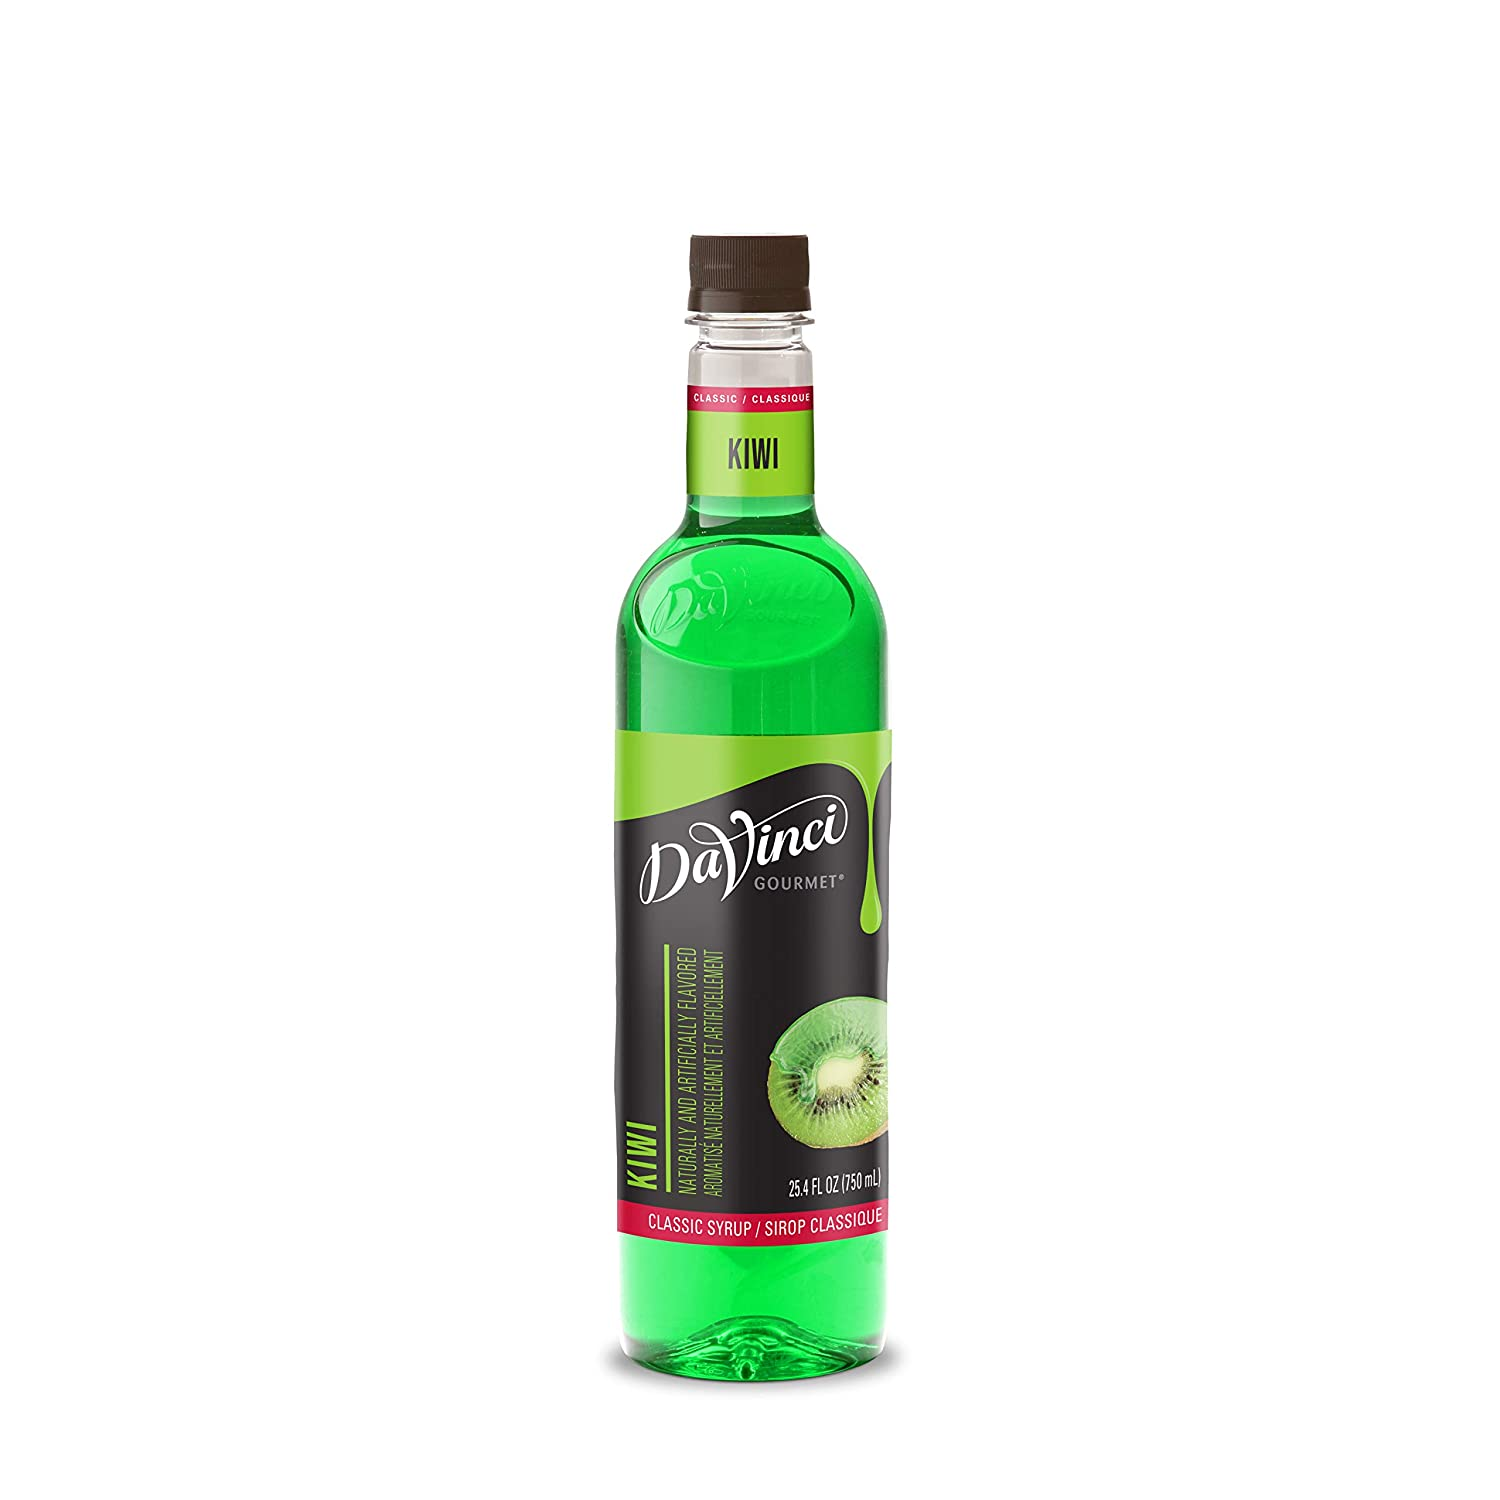 DaVinci Gourmet Classic Kiwi Syrup 25.4 Fl 4 of Great Excellence interest Ounce Pack